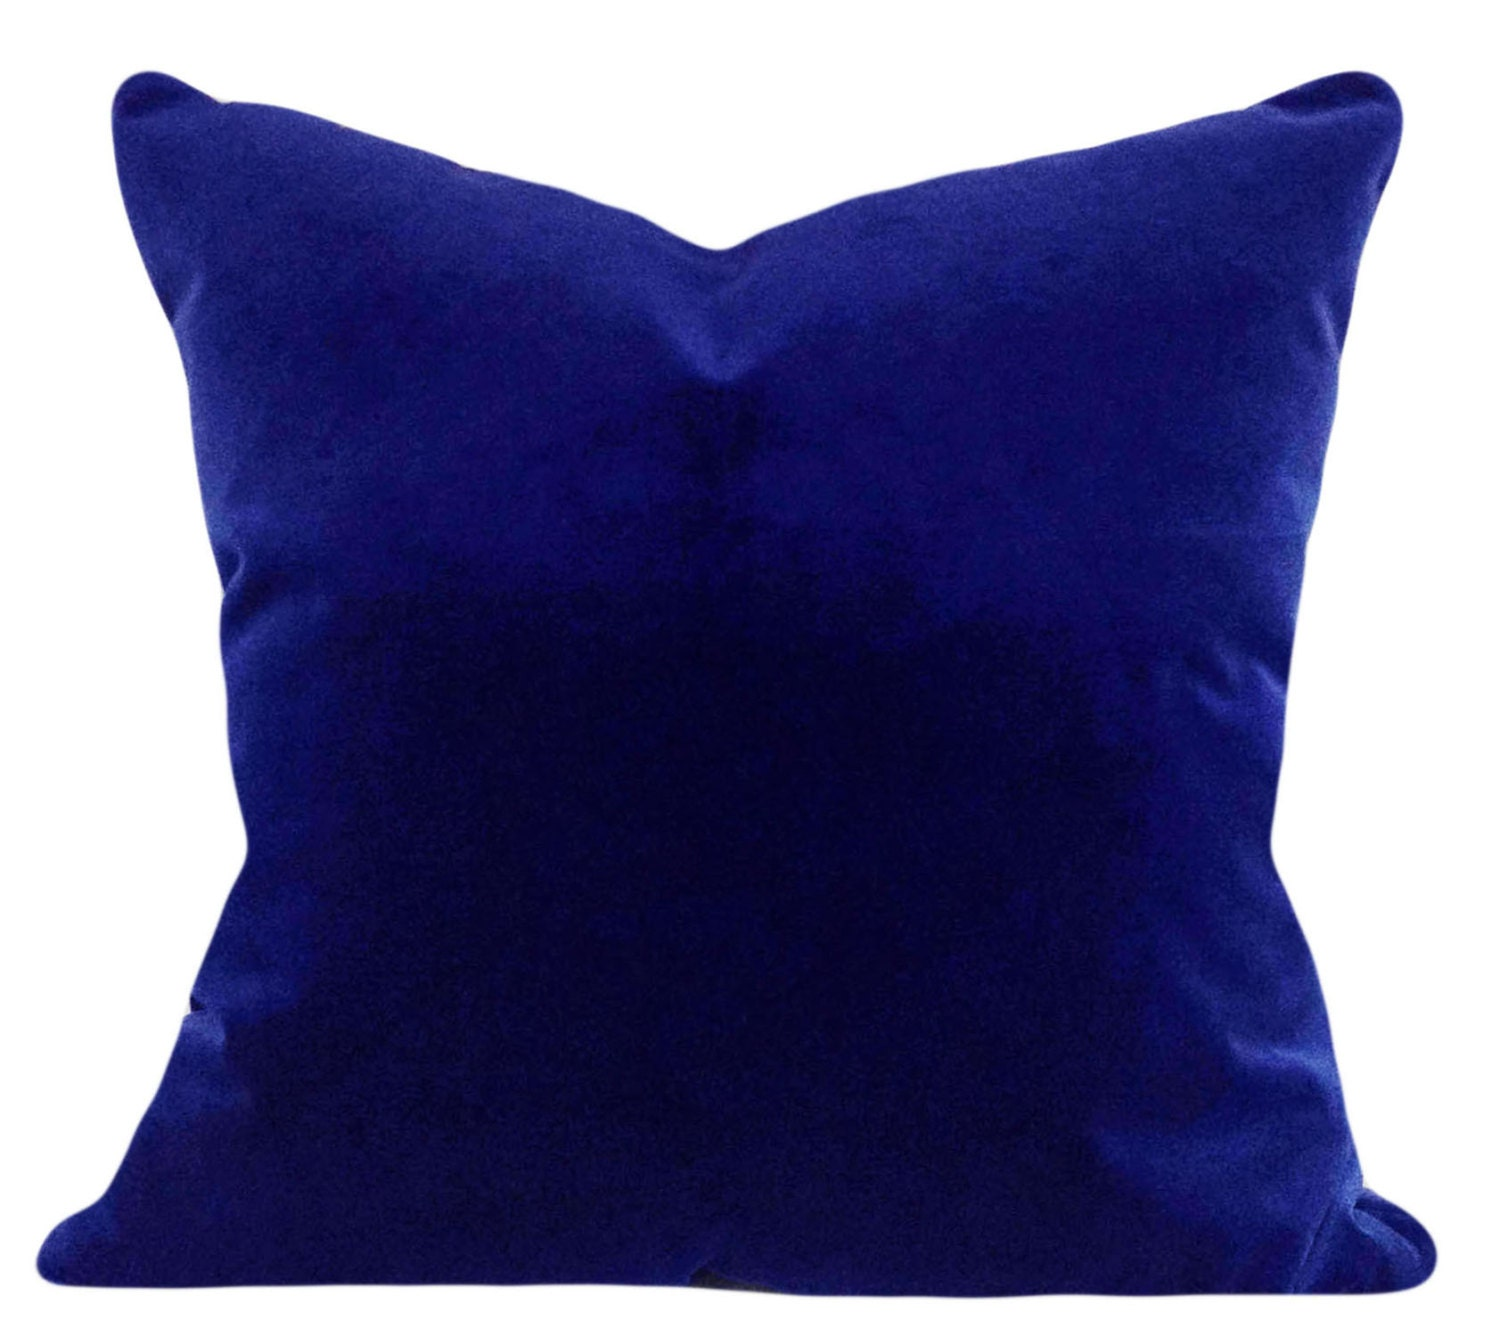 Royal Blue Velvet Decorative Pillow Cover by PillowTimeGirls